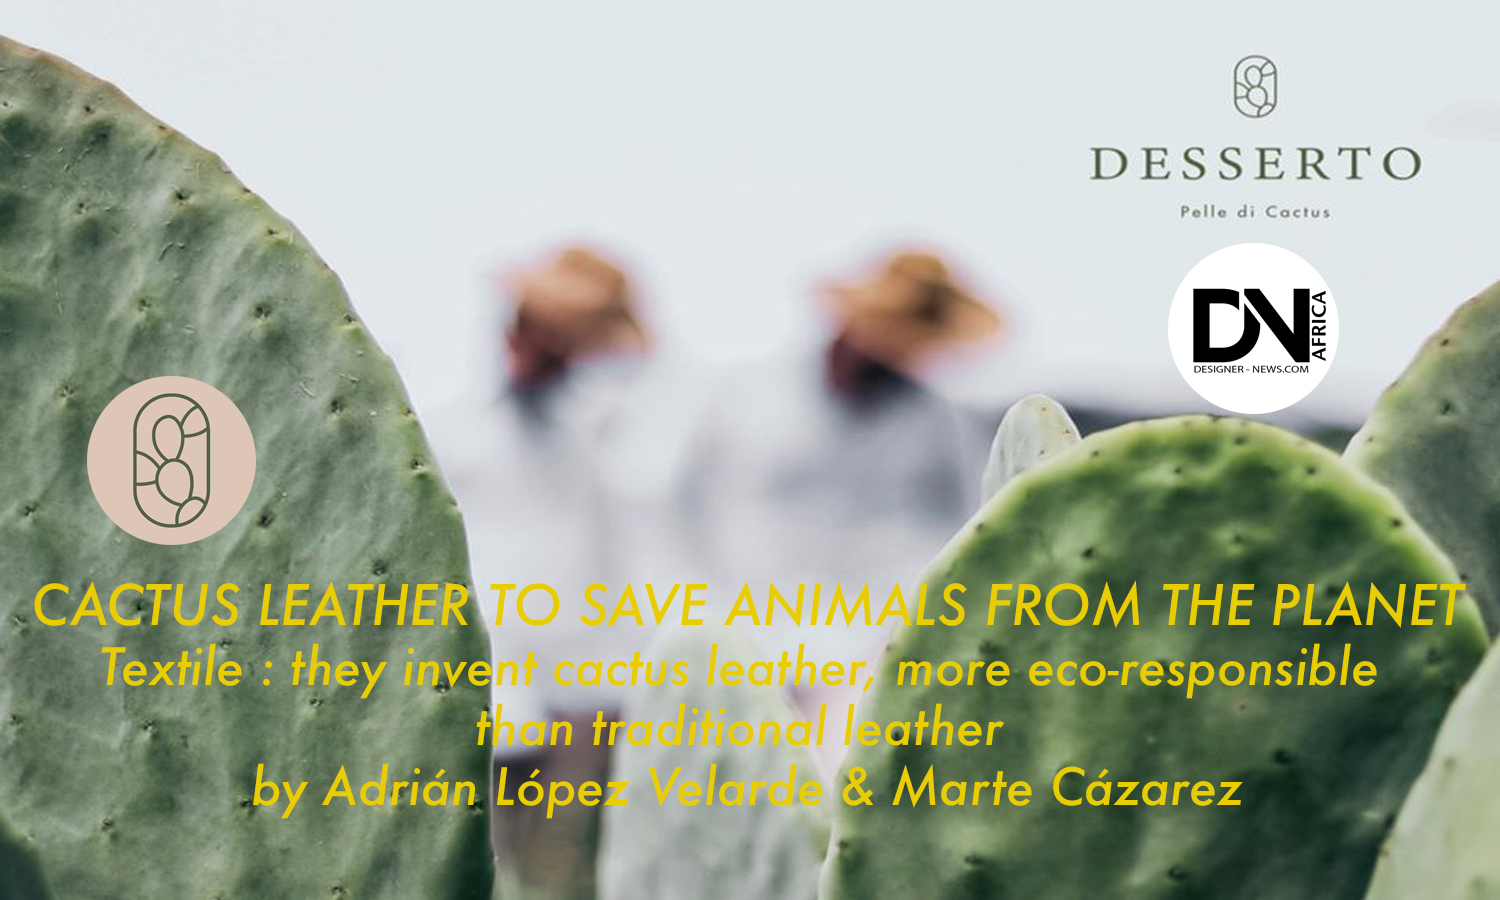 AFRICAN FASHION STYLE MAGAZINE - CACTUS LEATHER TO SAVE ANIMALS FROM THE PLANET by Adrián López Velarde & Marte Cázarez - Photographer DAN NGU - Media Partner DN AFRICA - STUDIO 24 NIGERIA - STUDIO 24 INTERNATIONAL - Ifeanyi Christopher Oputa MD AND CEO OF COLVI LIMITED AND STUDIO 24 - CHEVEUX CHERIE and CHEVEUX CHERIE STUDIO BY MARIEME DUBOZ- Fashion Editor Nahomie NOOR COULIBALY